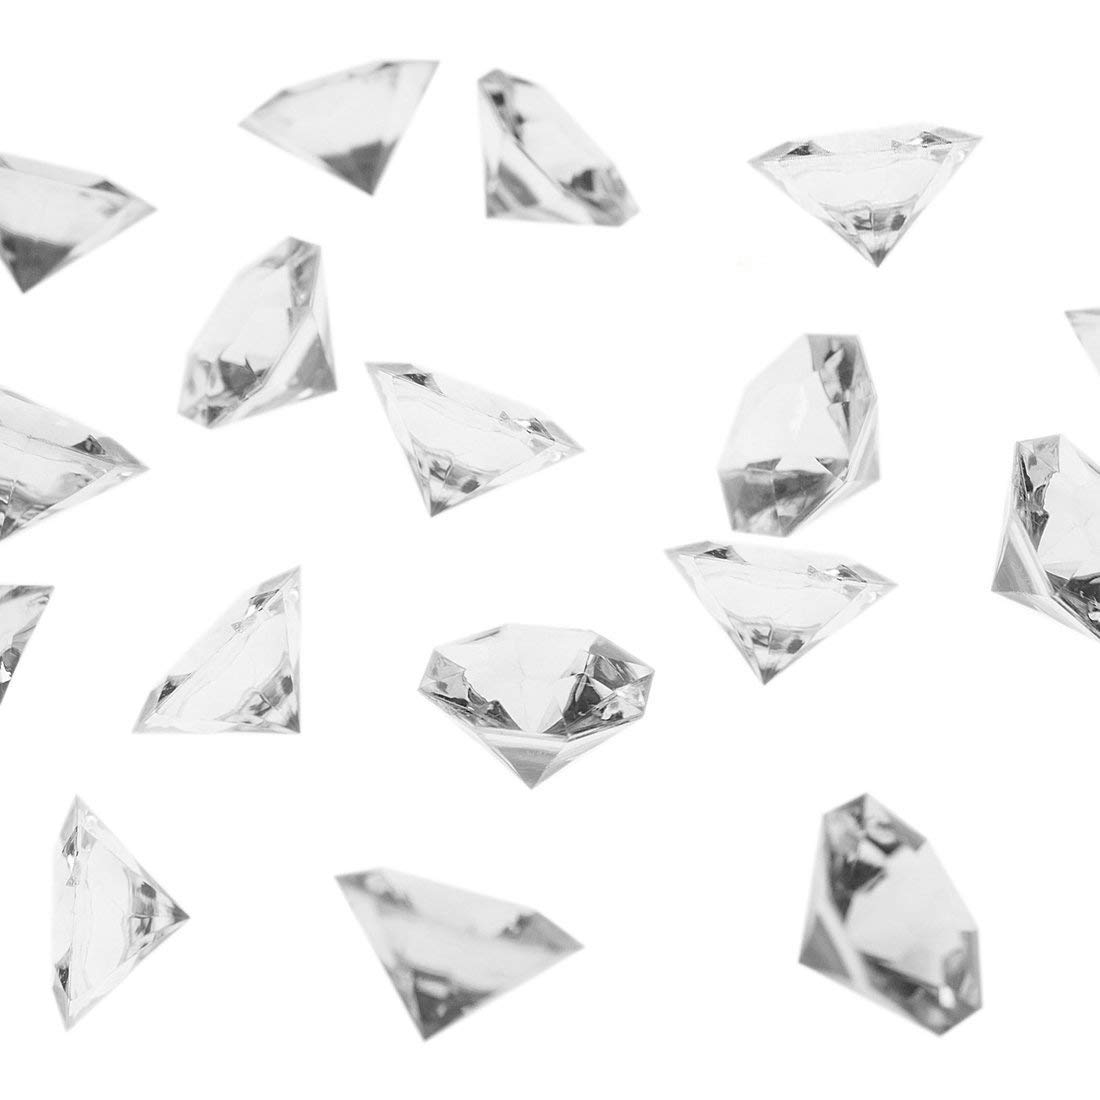 R.FLOWER 36 Carat Clear Acrylic Diamonds, Big Diamonds for Table Scatters, Vase Fillers, Event, Wedding, Party, Birthday Decoration Pirate Treasure, Pack of 40